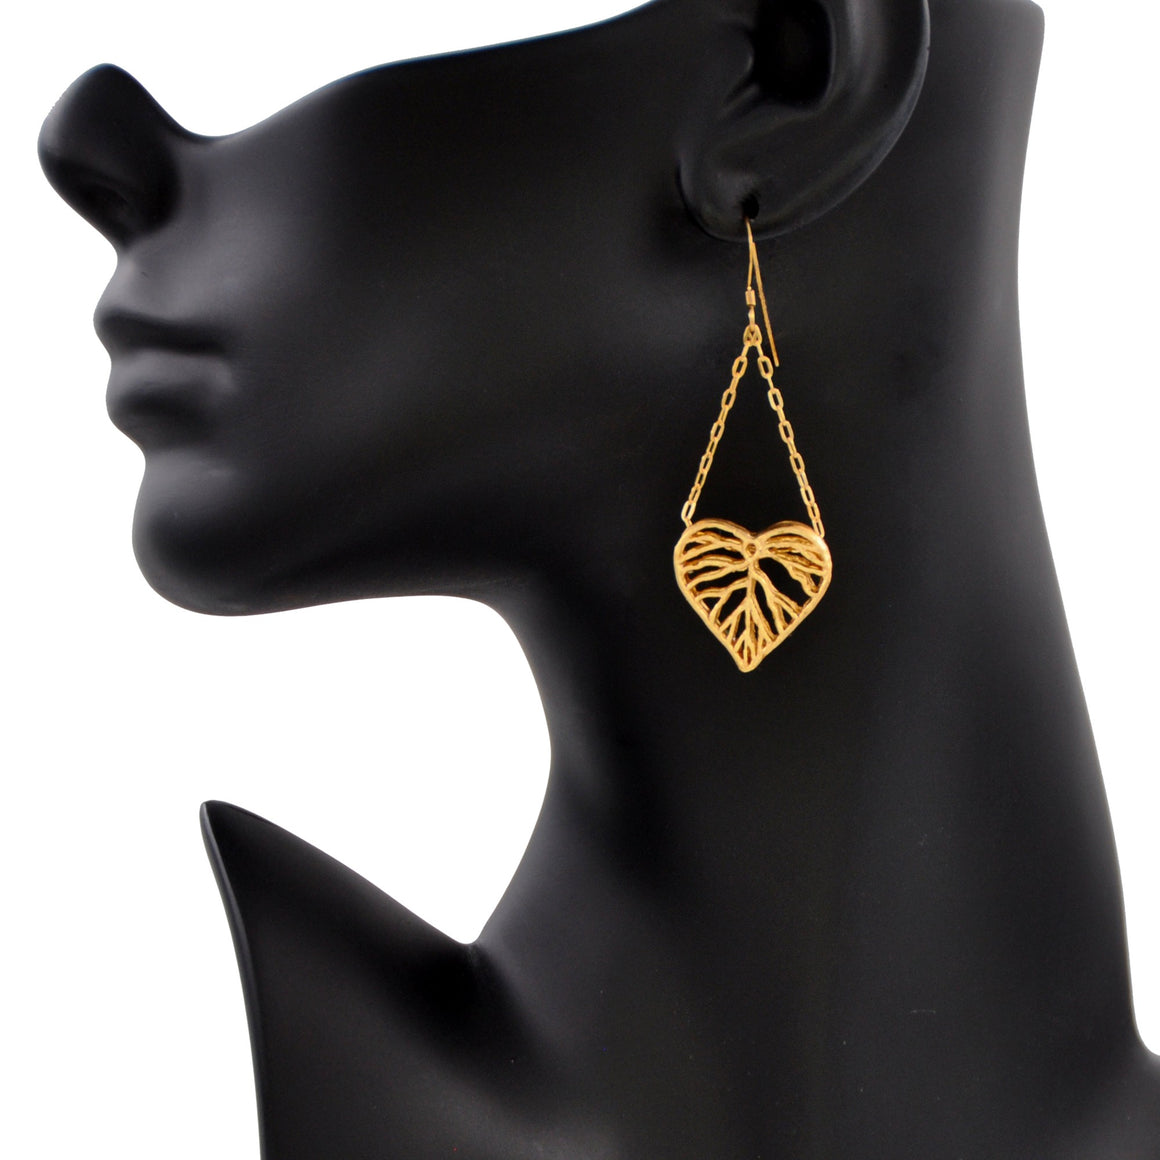 Heart Leaf Dimensional Dangling Earrings - 24K Gold Plated